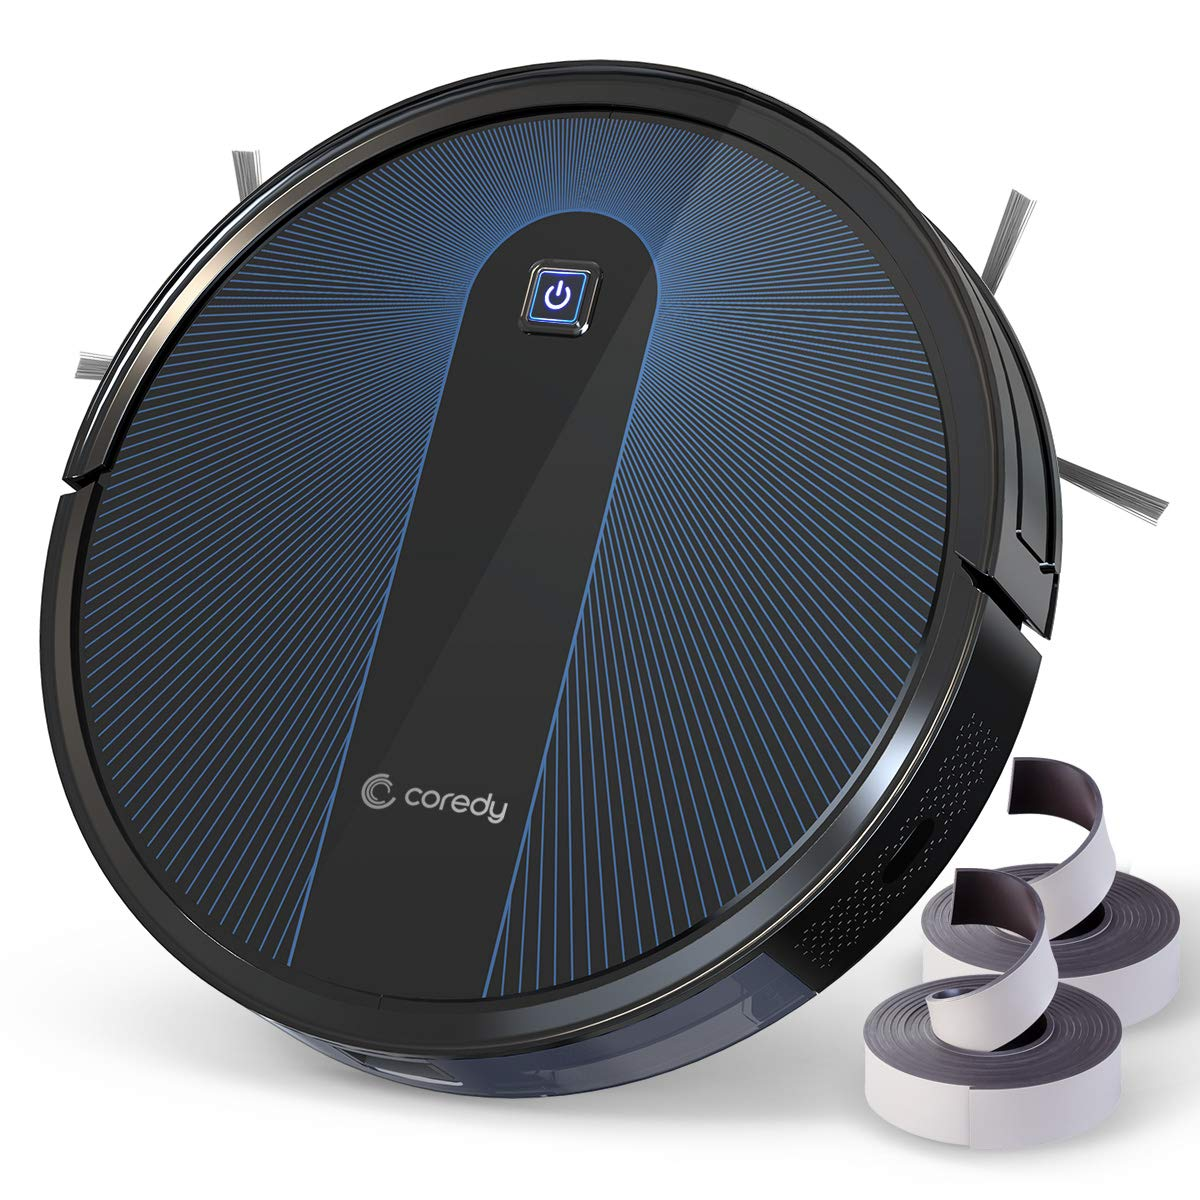 Coredy Robot Vacuum Cleaner, Boost Intellect, 1600Pa Super-Strong Suction, Boundary Strips Included, 360° Smart Sensor Protection, Ultra Slim, R650 Robotic Vacuum, Cleans Hard Floor to Carpets by Coredy